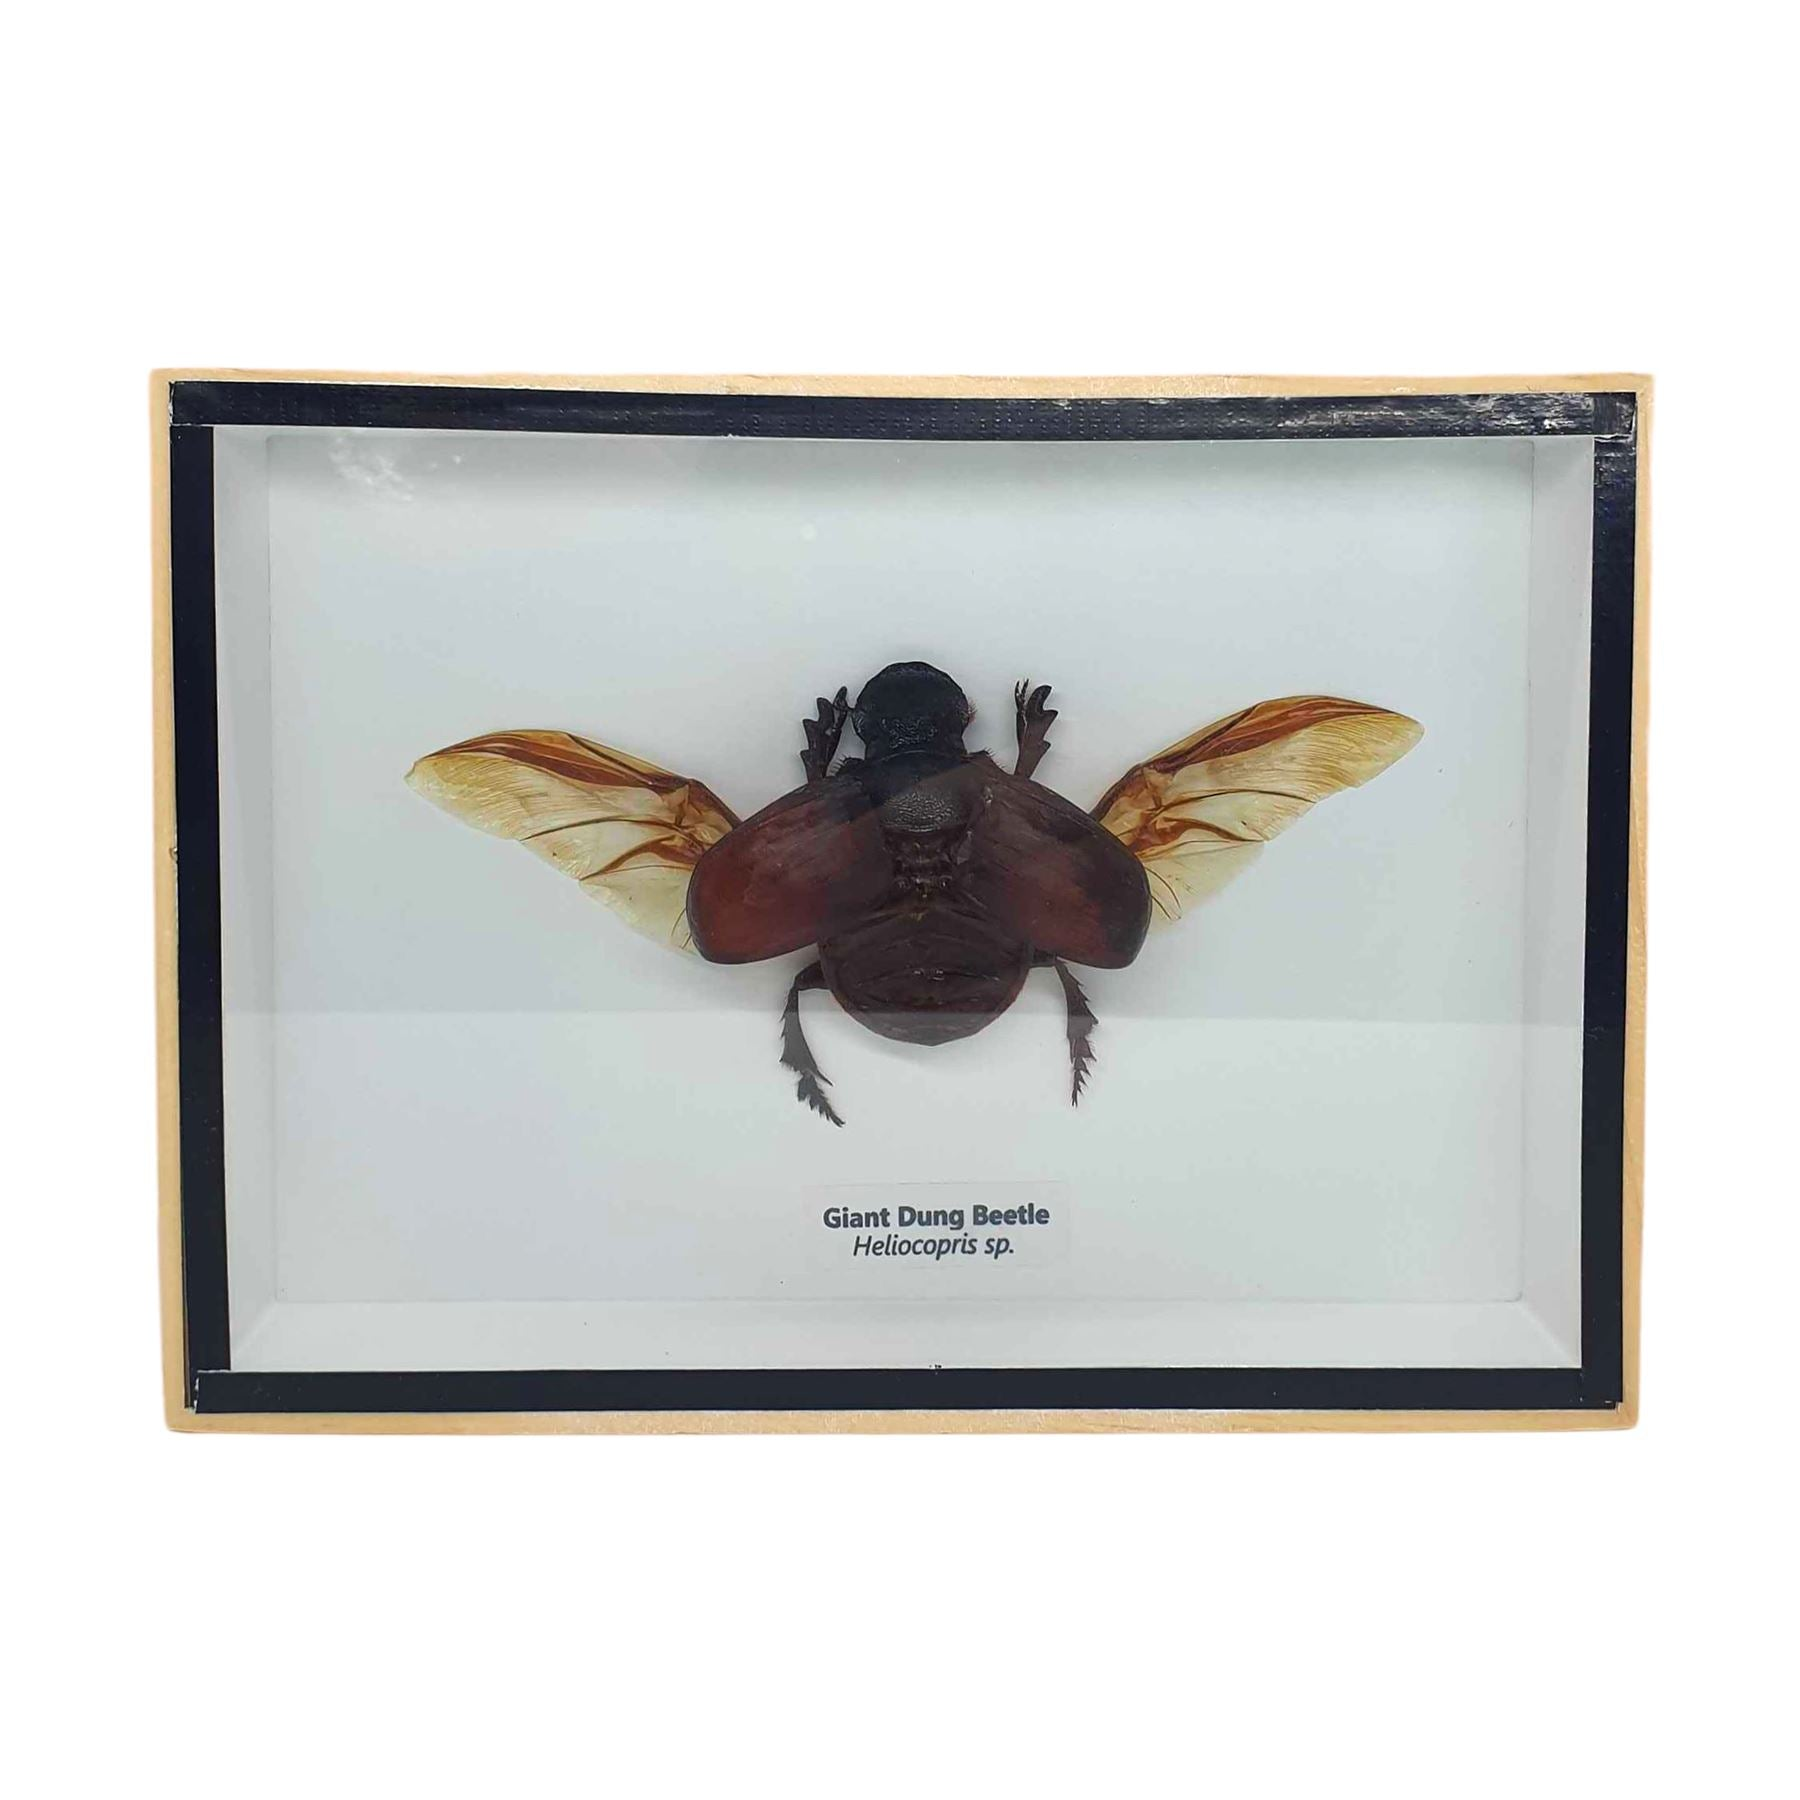 Vie Naturals Taxidermy Dung Beetle, 18x13cm, Collectables by Global 1st